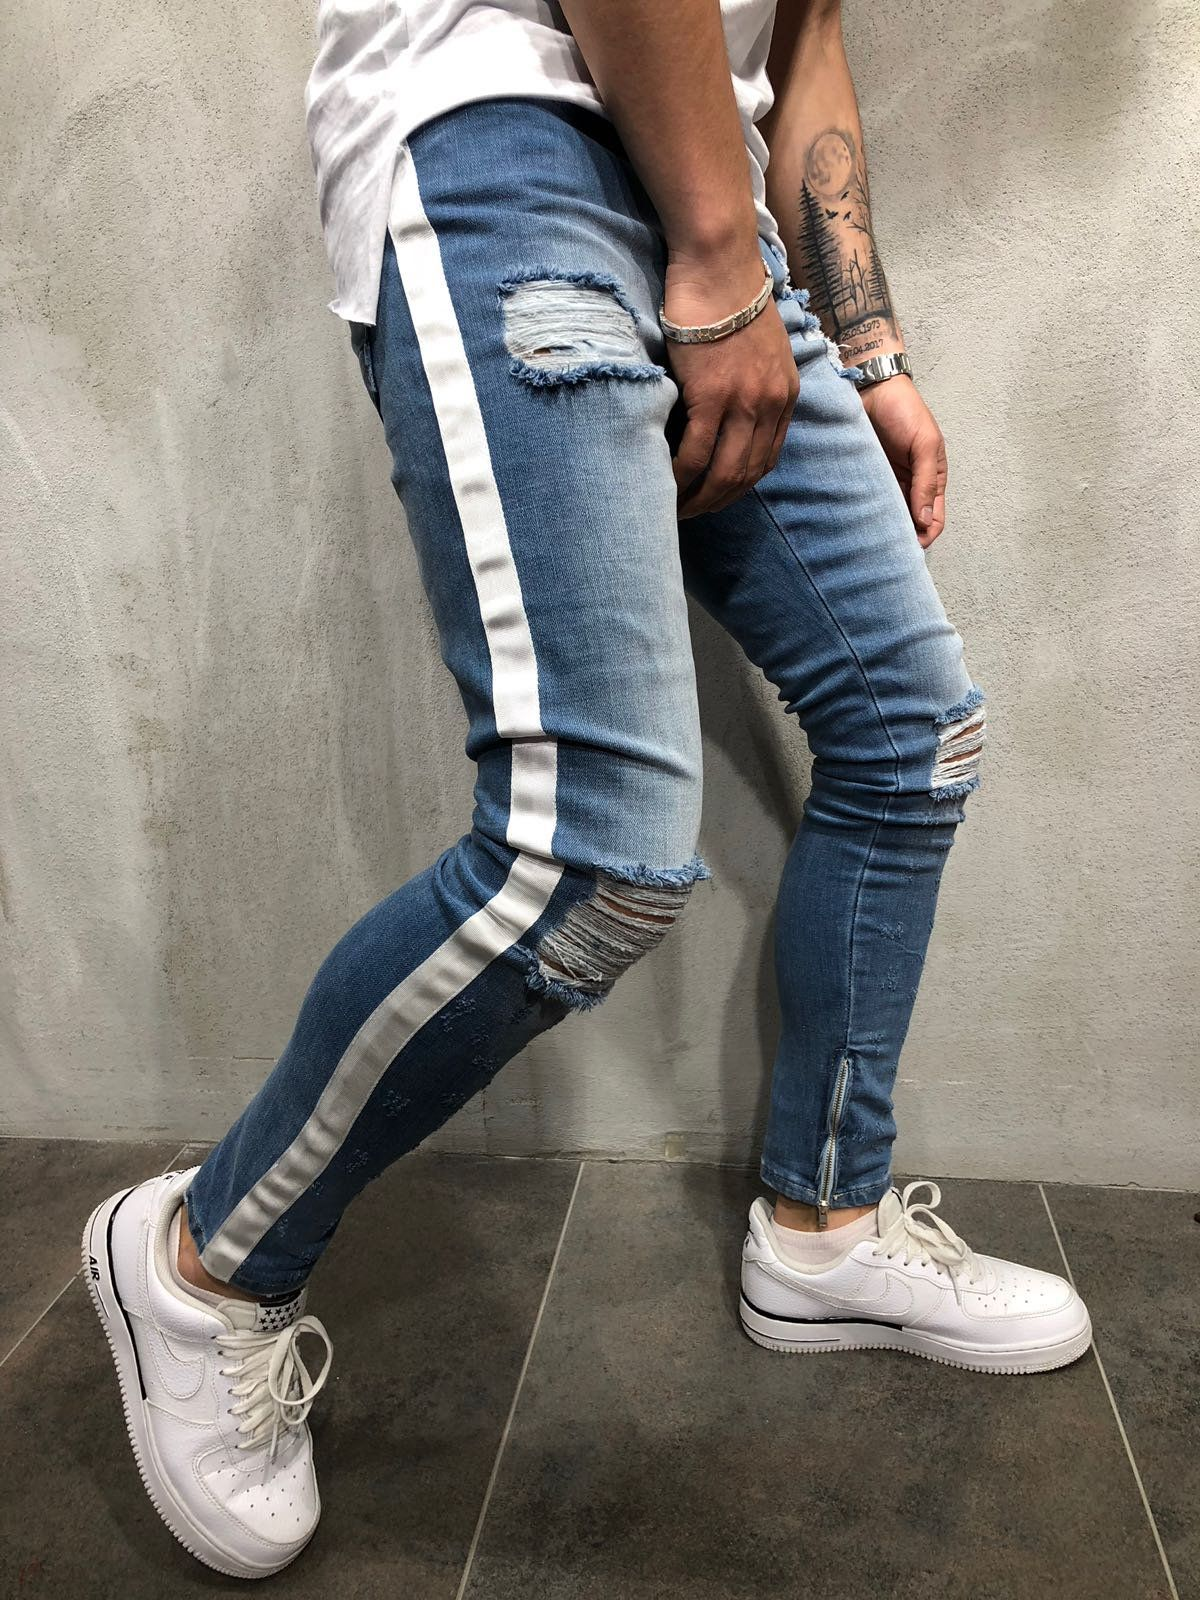 58e6a1b44cc White Side Stripes Distressed Jeans . This ripped knee jeans is as cool as  your attitude, so why don't you try it? . . . . #distressedjeans #MensWear  # ...